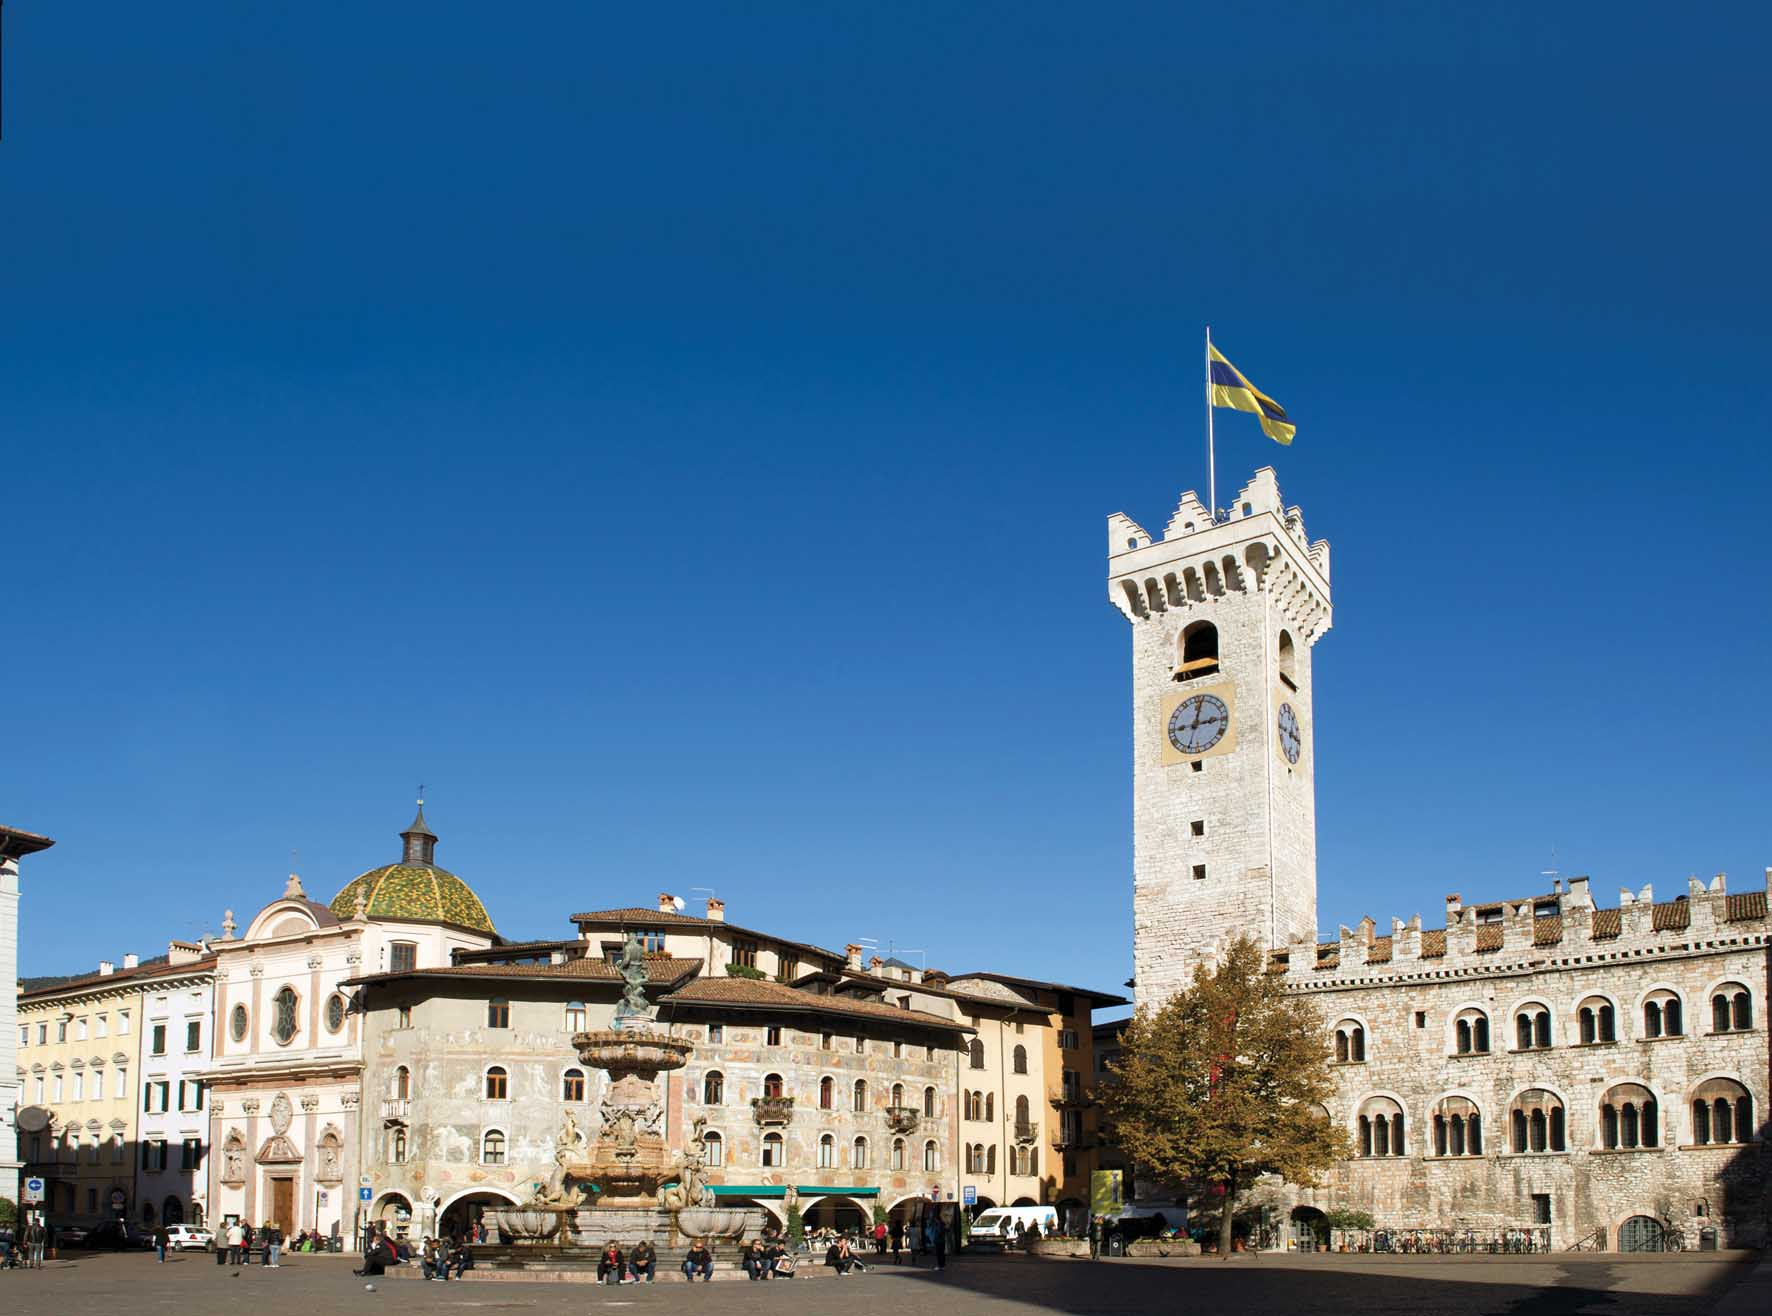 Smart City Index trento-piazza-duomo-torre-civica-ilnordestquotidiano